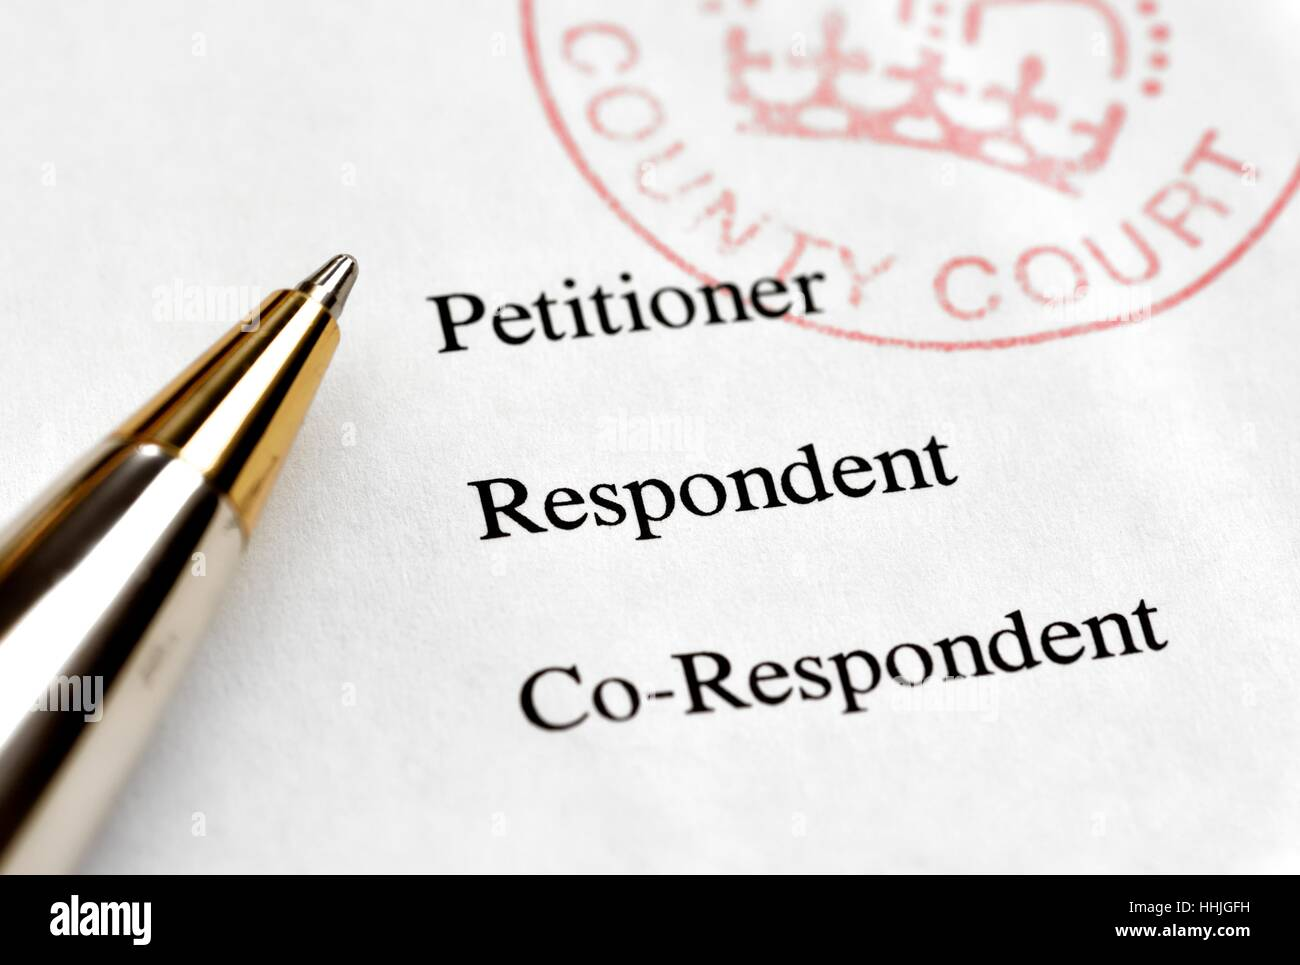 County court divorce papers, petitioner,respondent,co-respondent and a pen ready for signing. - Stock Image